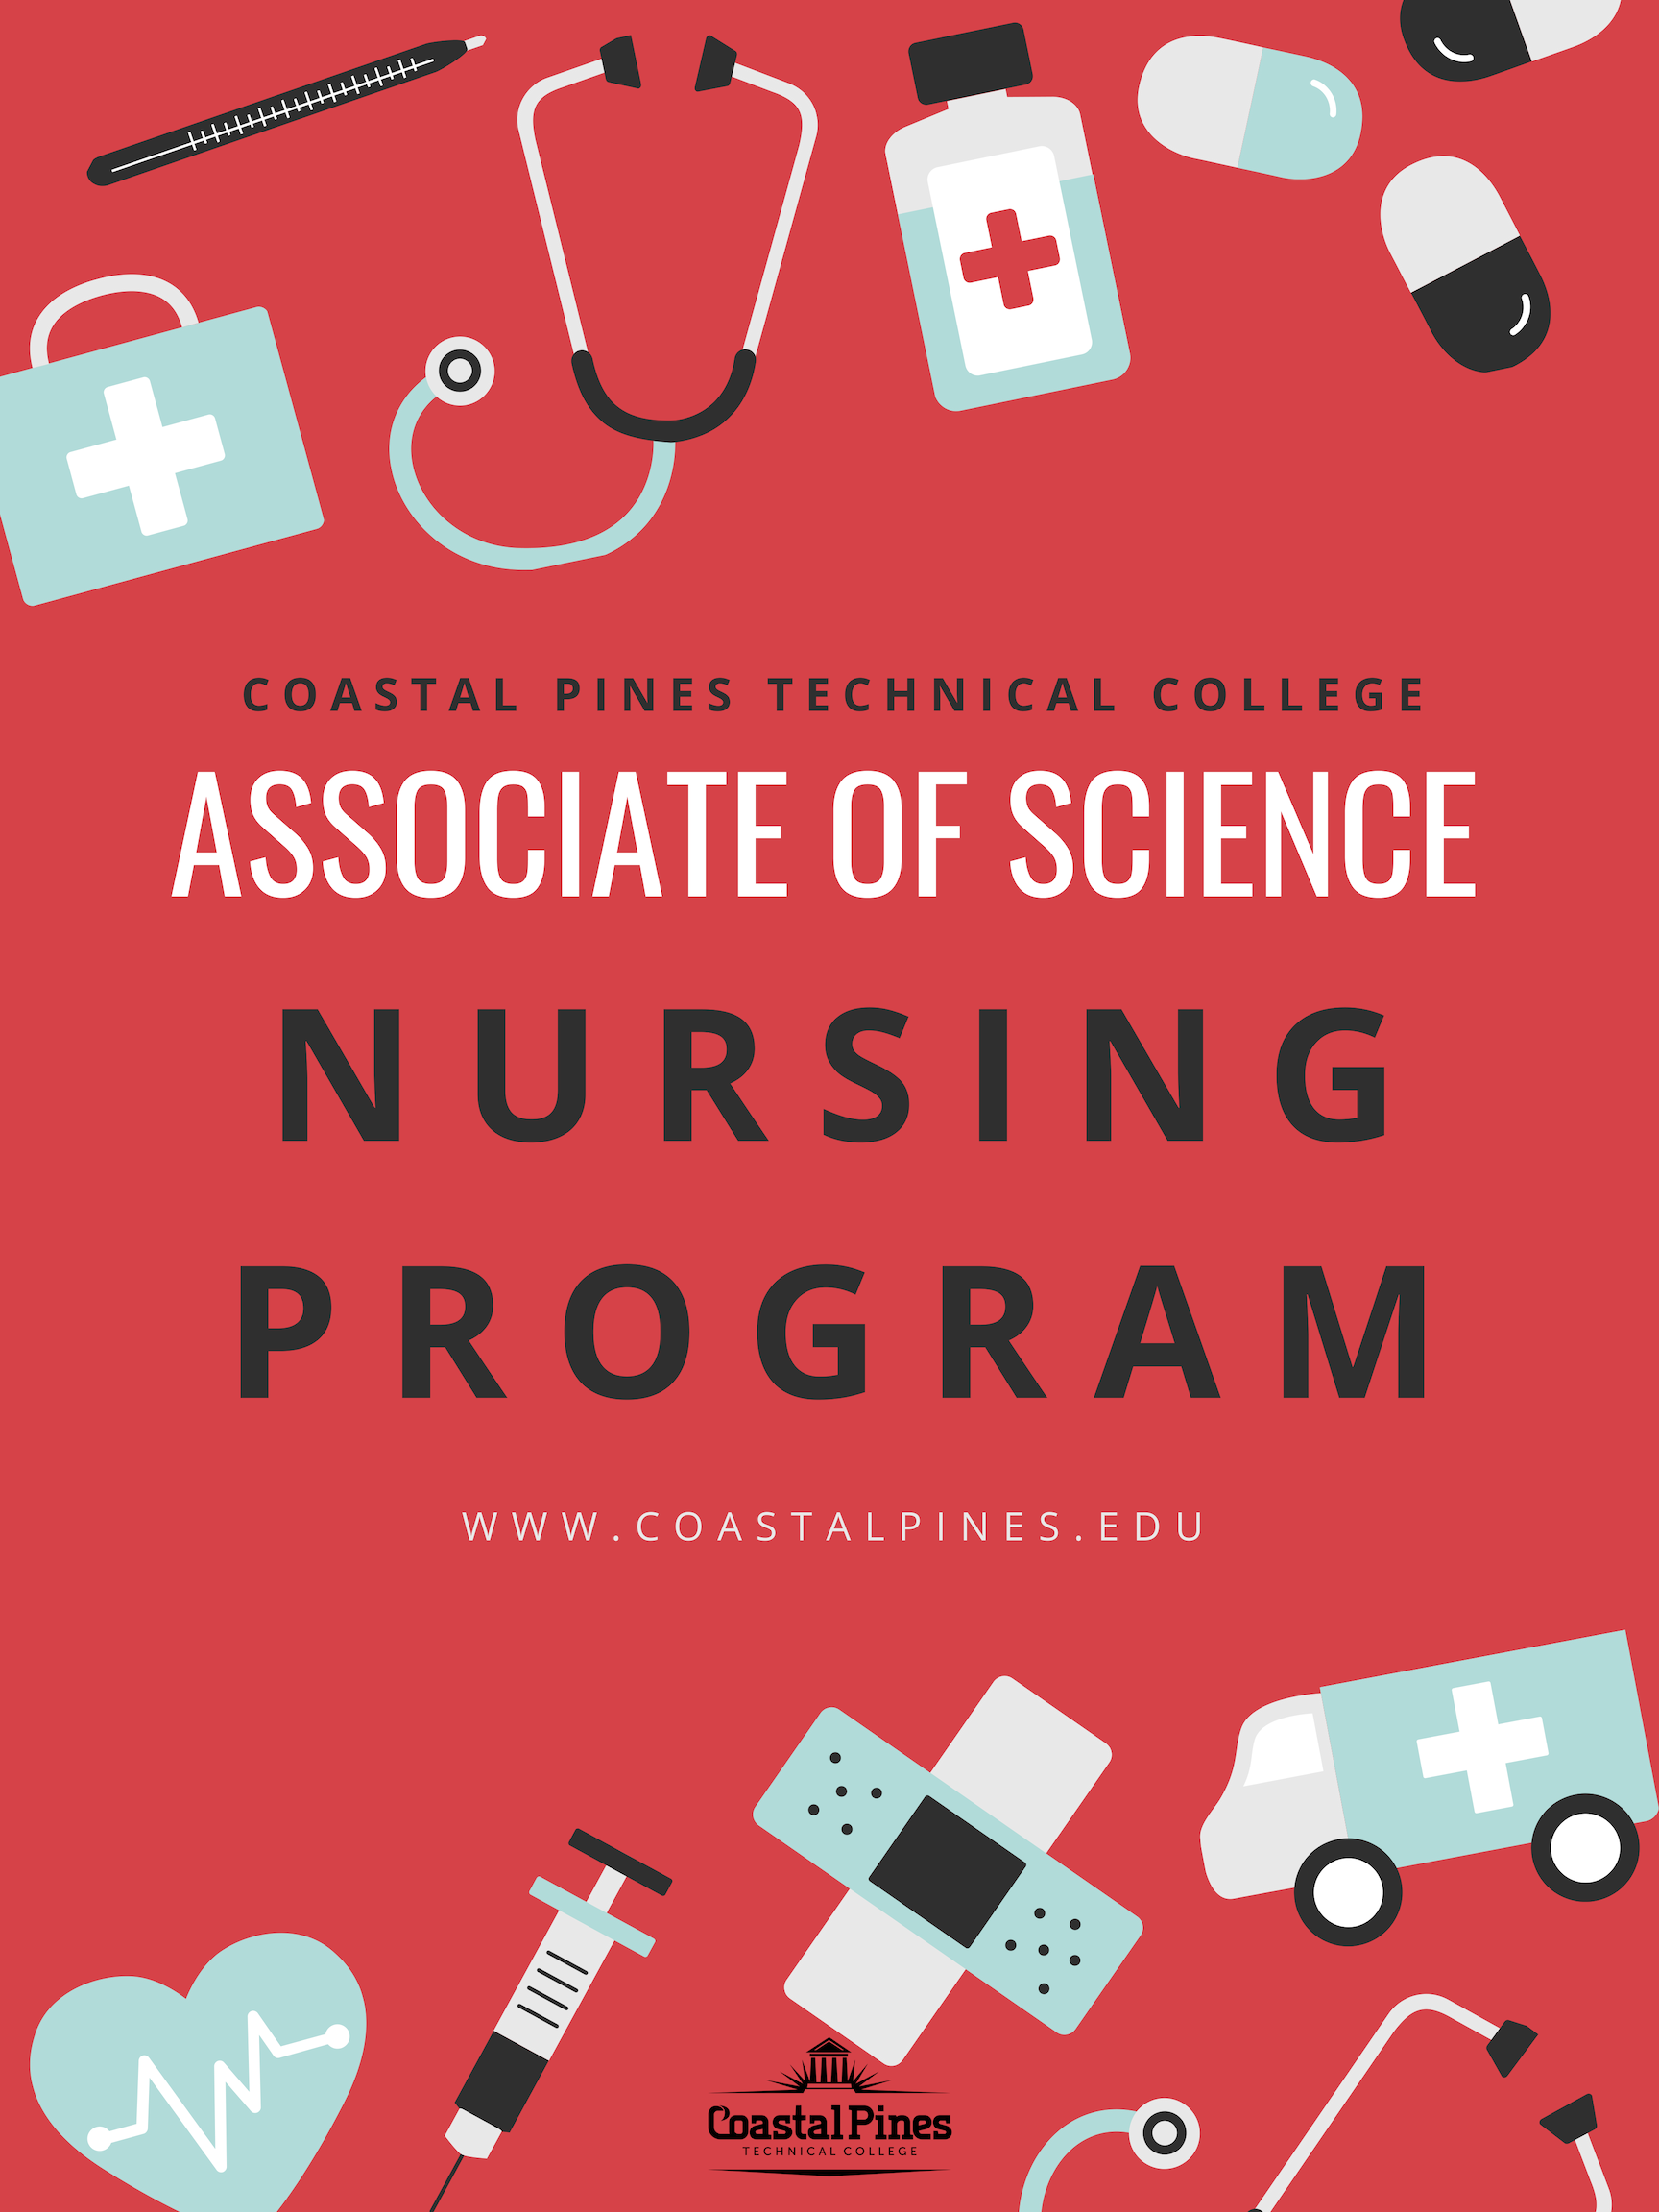 Associate of Science Nursing Program Flyer